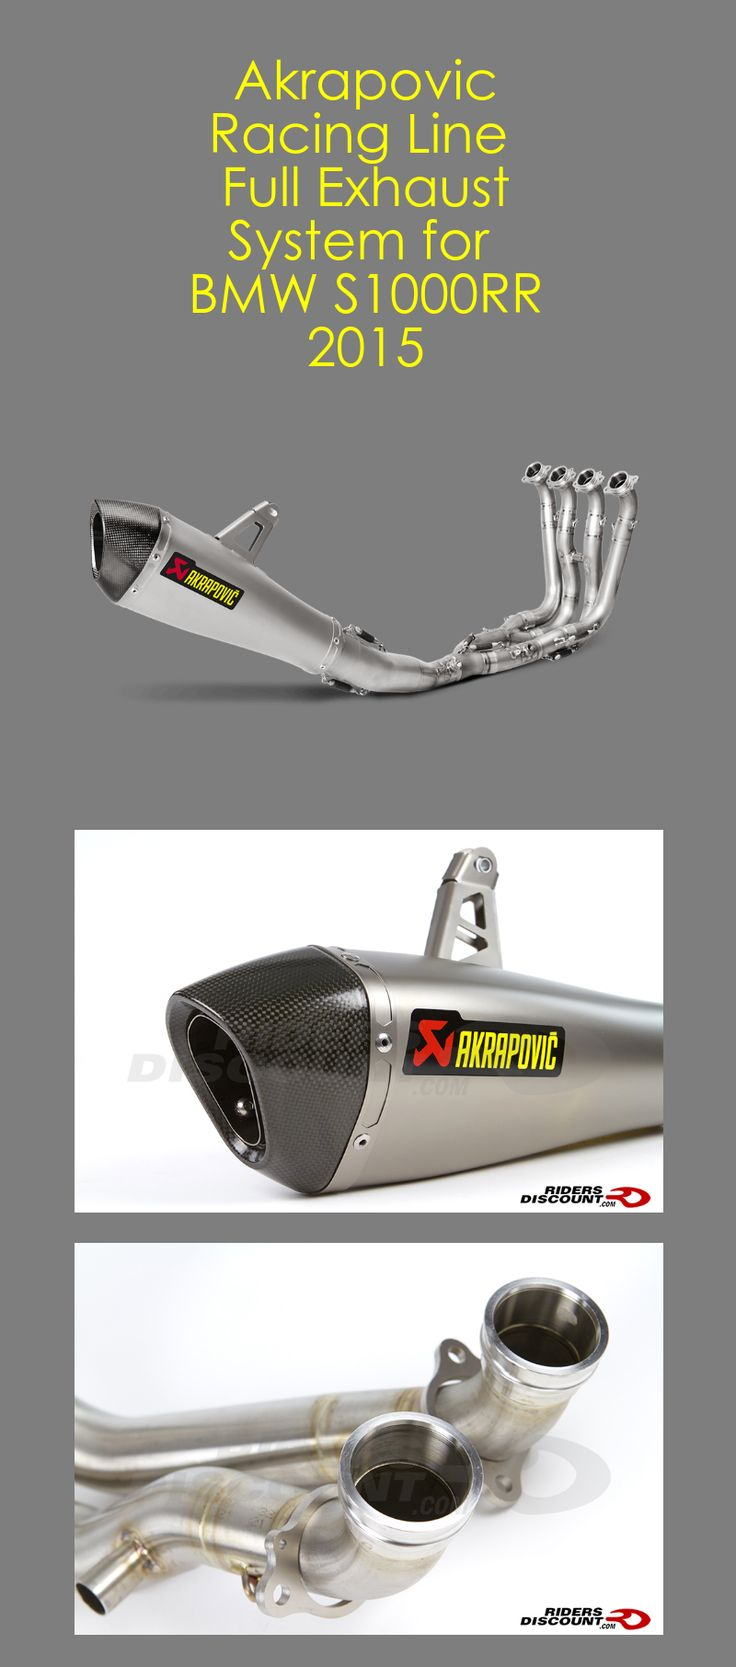 Review: The Akrapovic Racing Line Full Exhaust System for the BMW S1000RR 2015 is one of the best options in both price and performance when looking to upgrade your motorcycle.